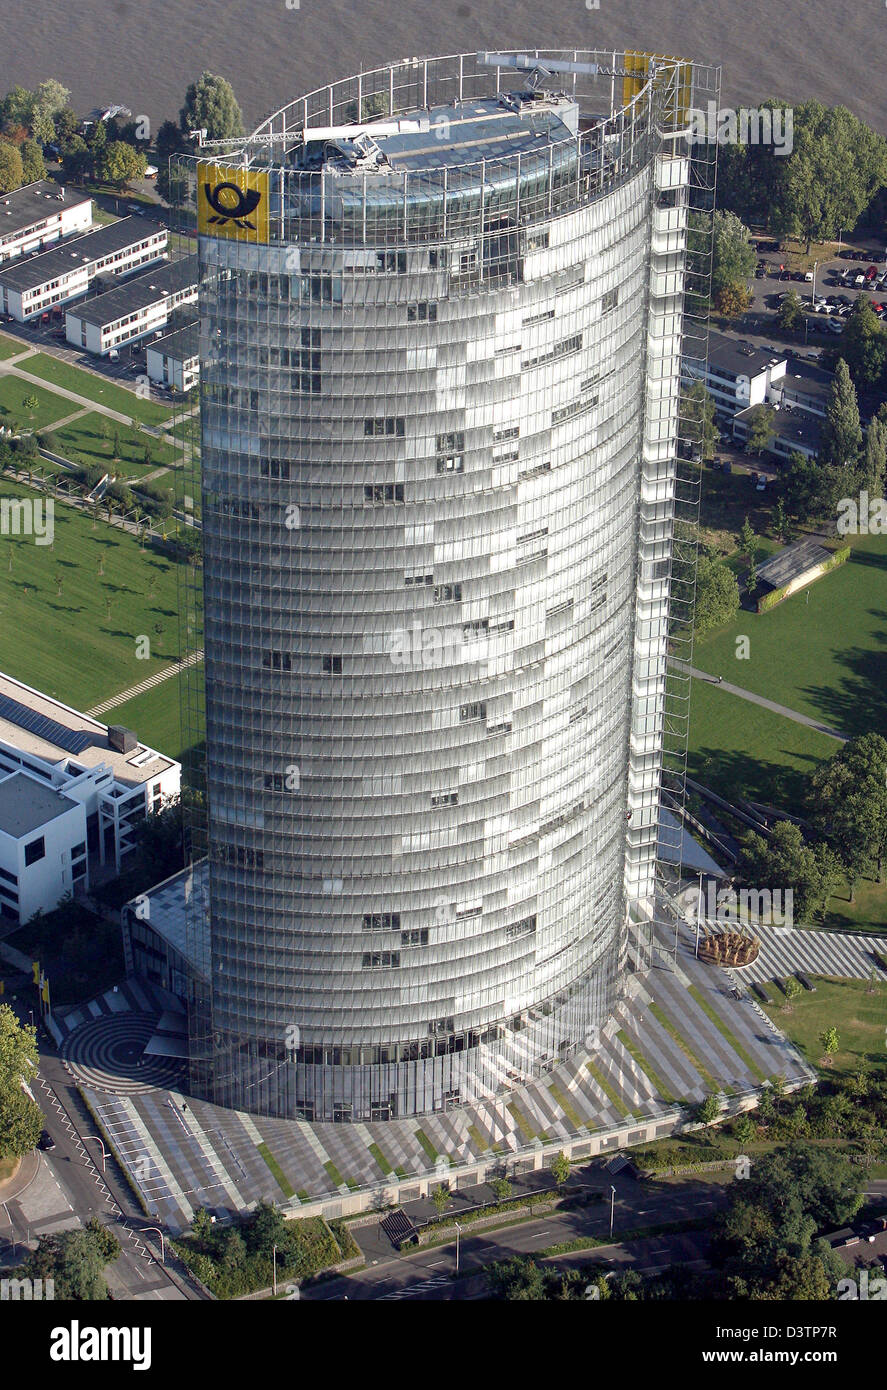 The picture shows the Post tower of the former government district in Bonn, Germany, Saturday 21 October 2006. The - Stock Image